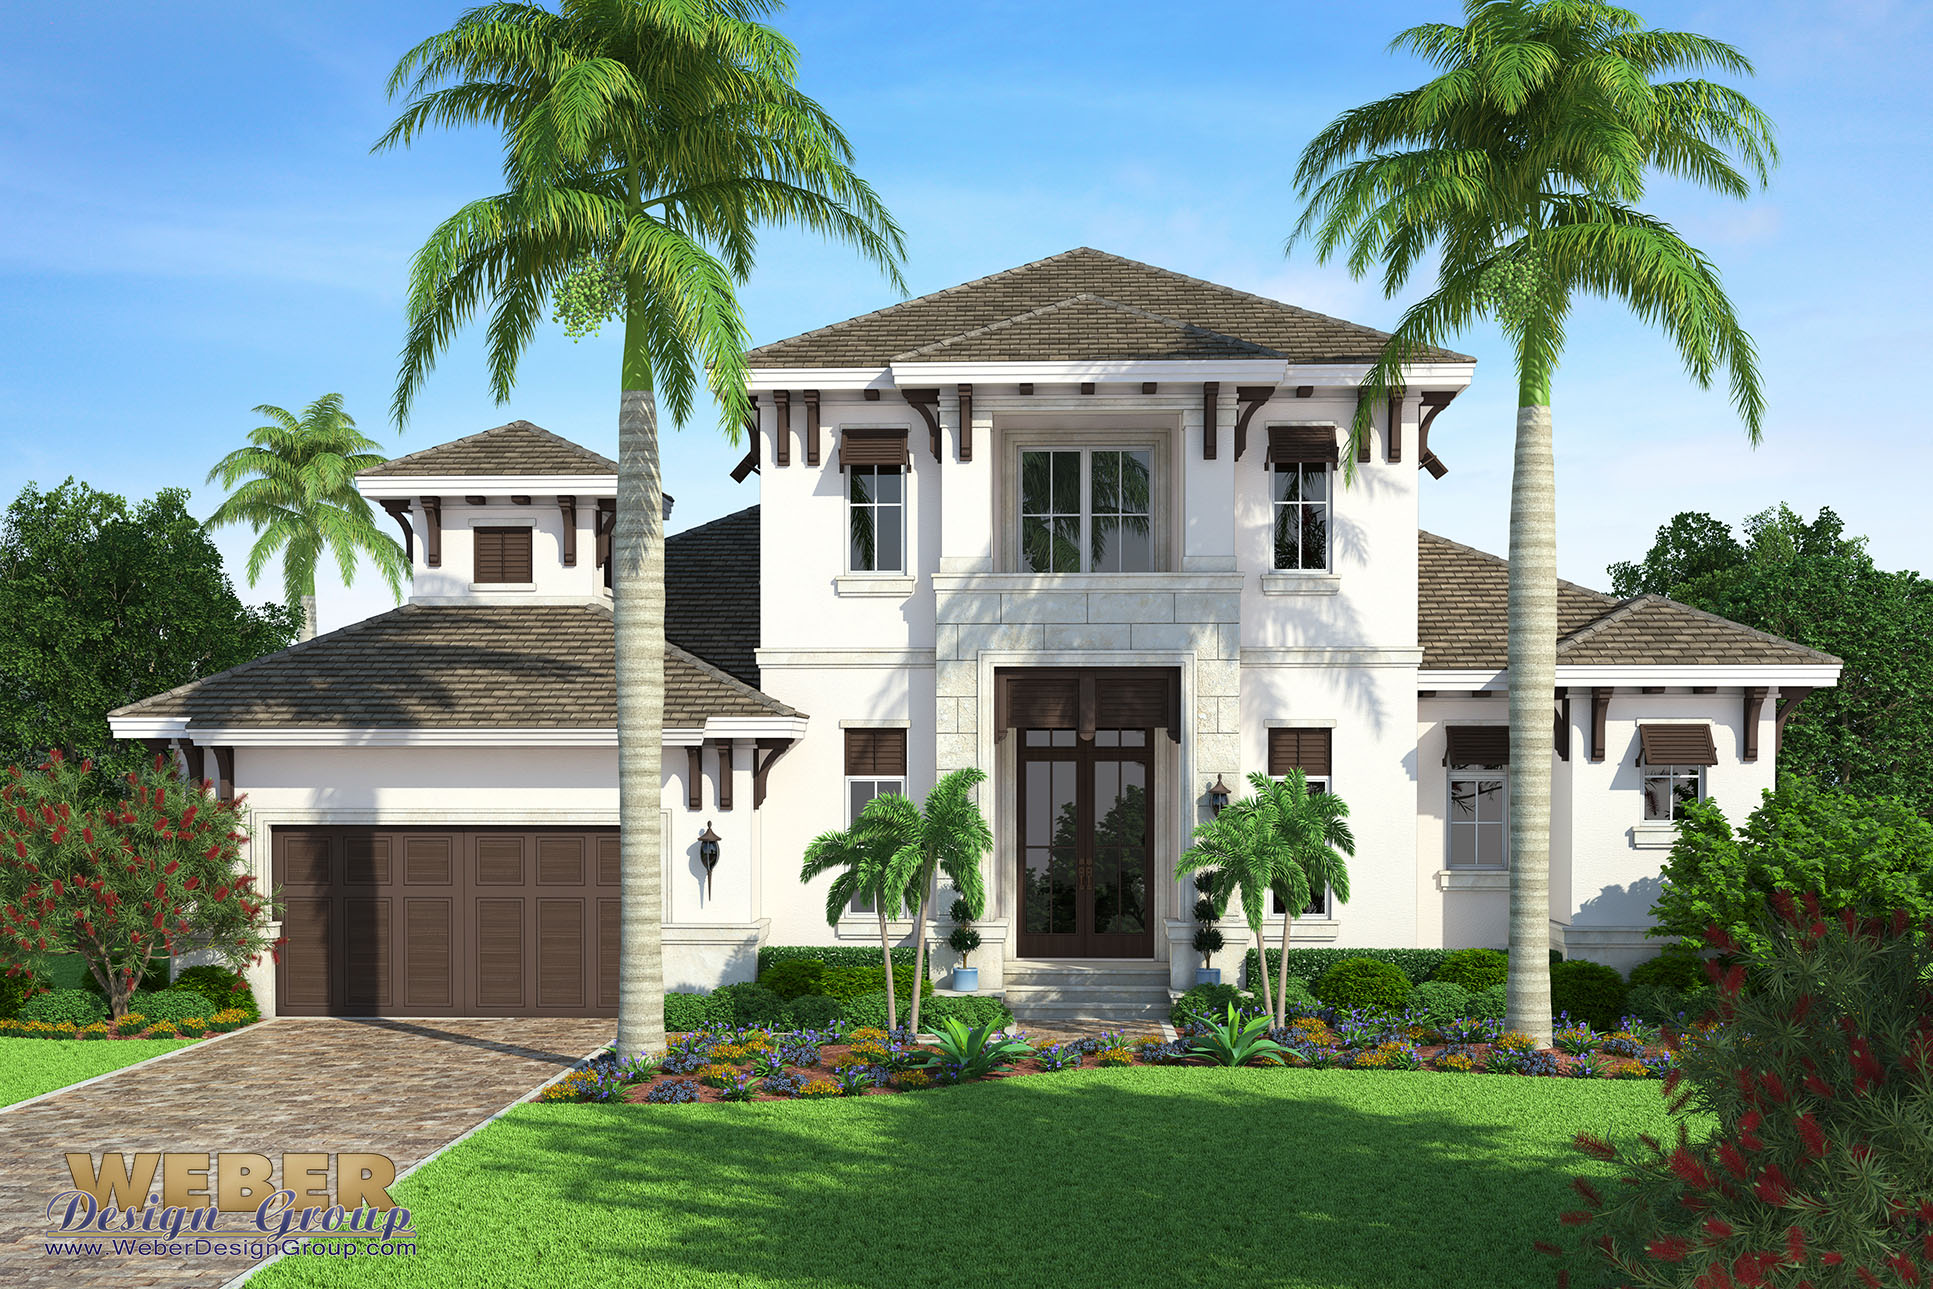 Beach House Plan Transitional West In s Beach Home Floor Plan